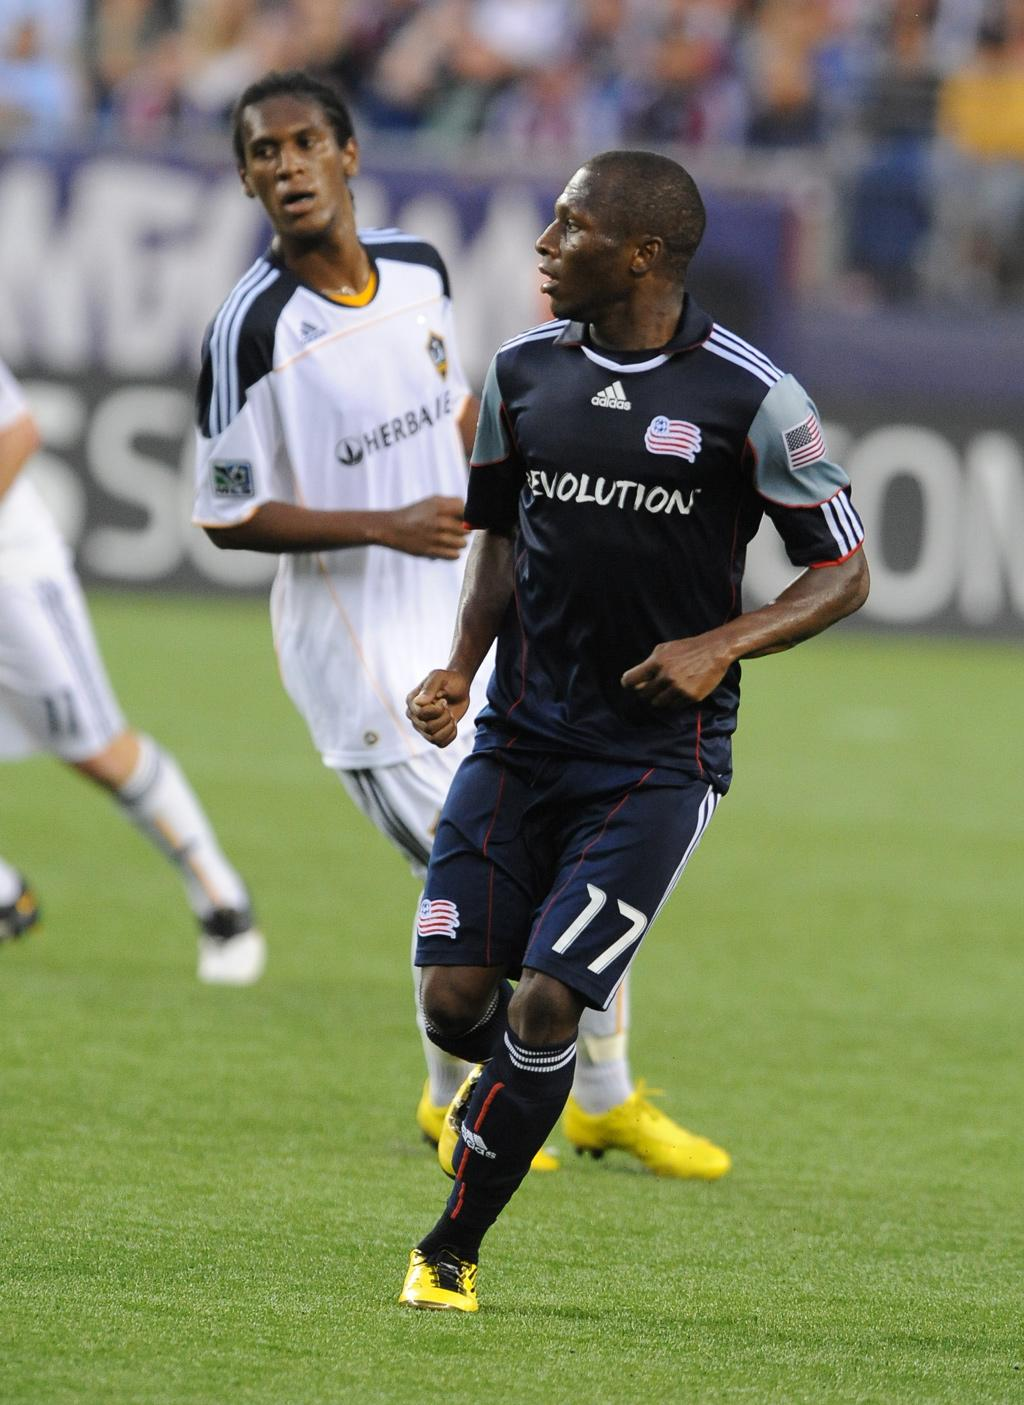 Sainey Nyassi scored his second goal of the season to give the Revs a two-goal cushion in the 74th minute